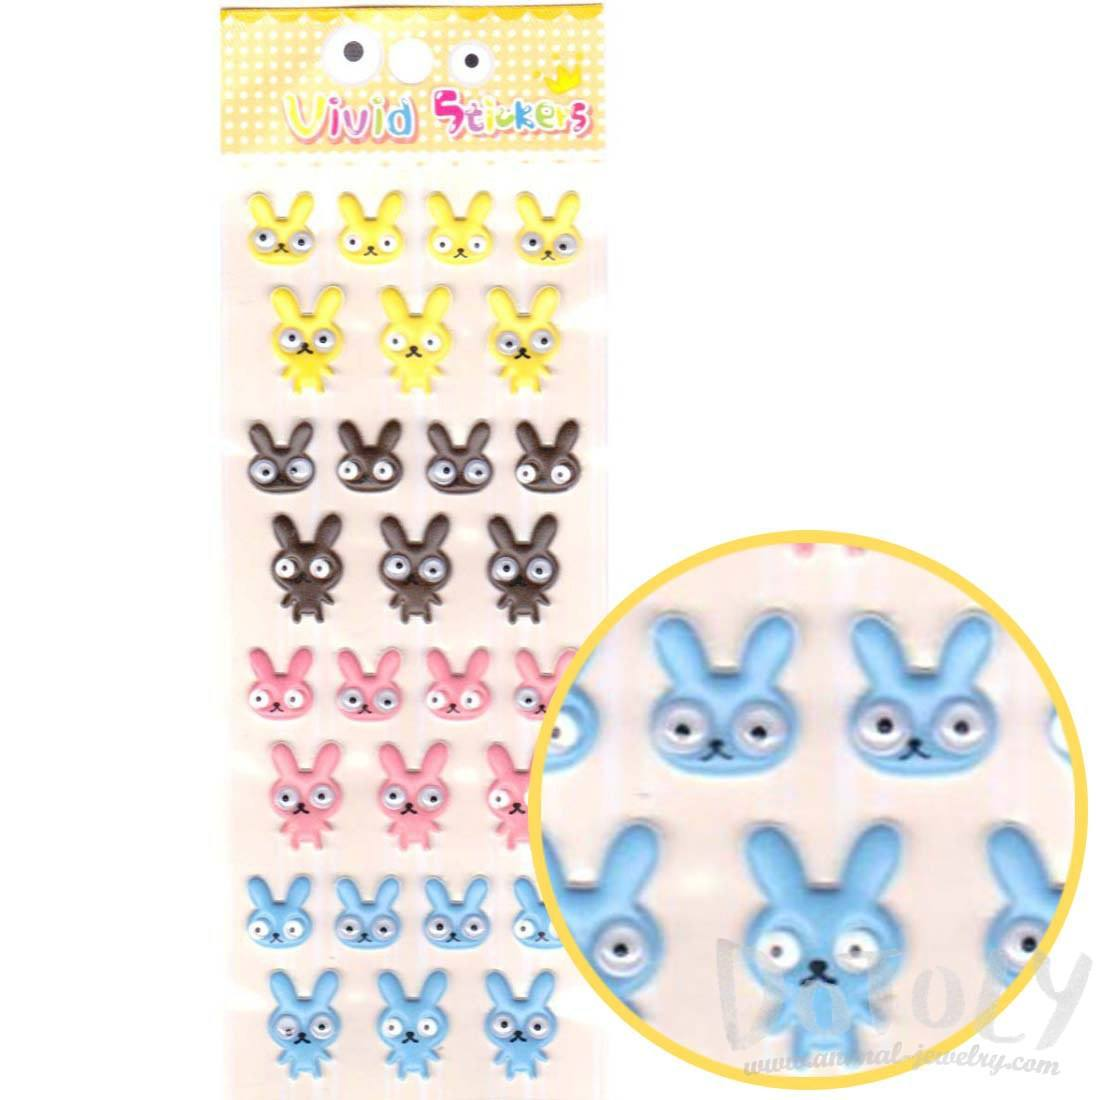 Bunny Rabbit With Googly Eyes Shaped Stickers for Kids